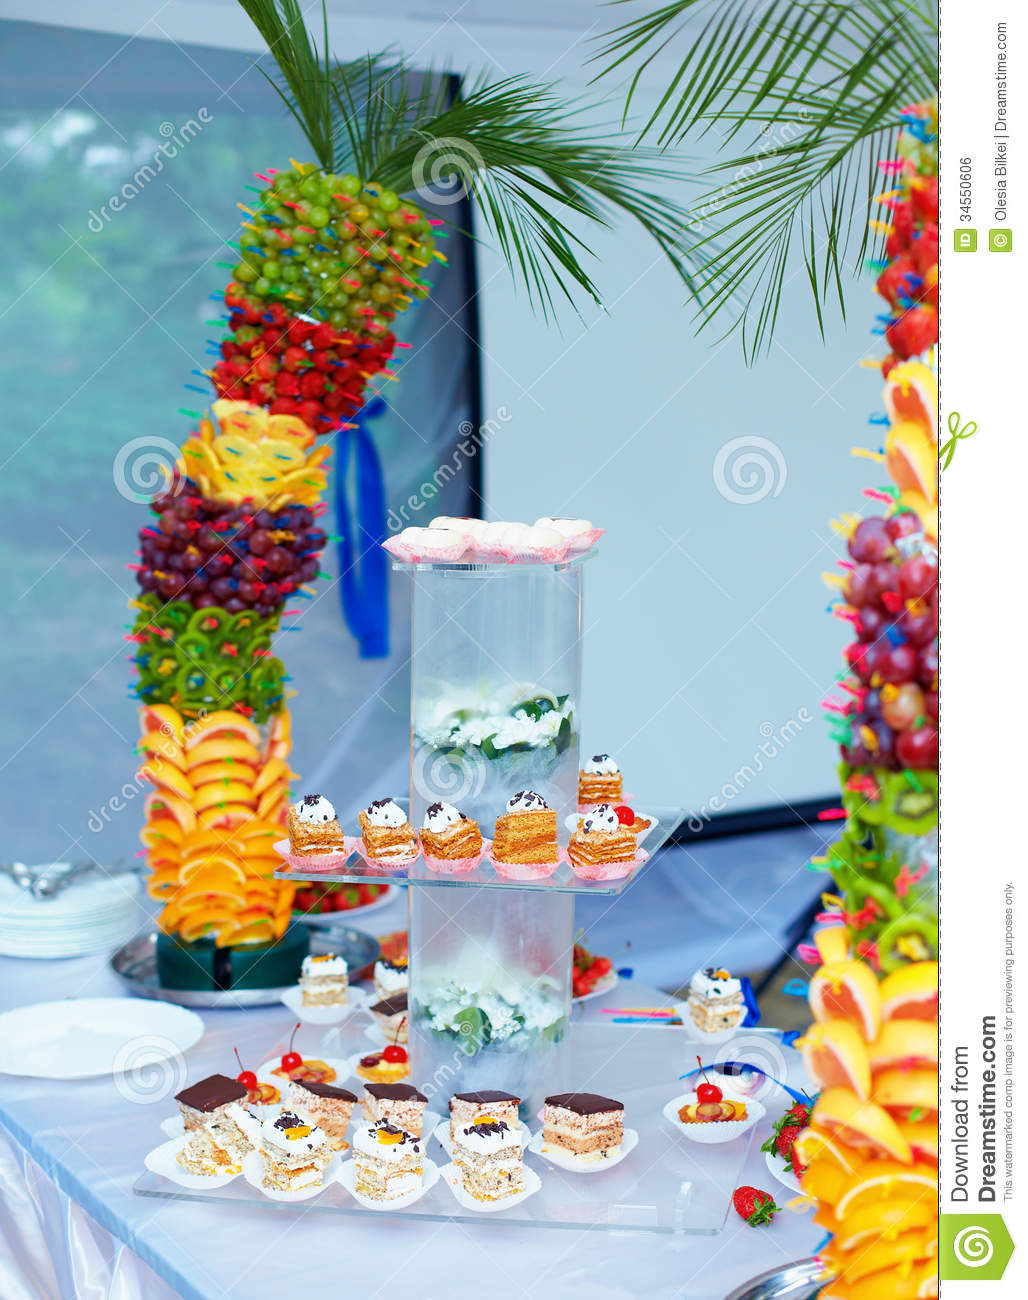 colorful fruit and cake decoration on banquet party stock photo image of beautiful berry. Black Bedroom Furniture Sets. Home Design Ideas